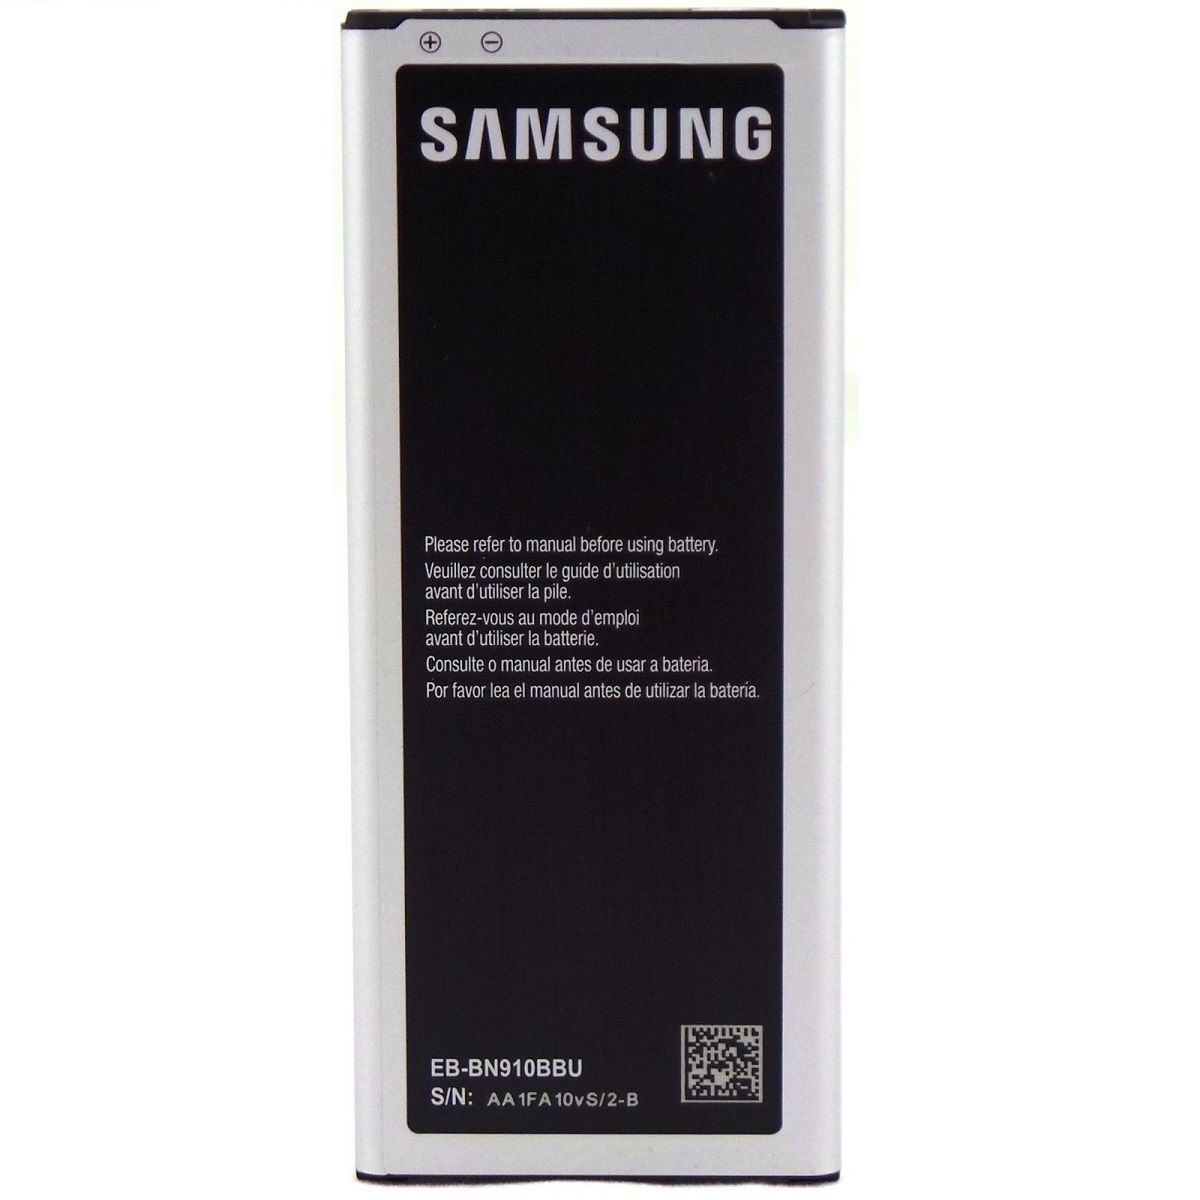 Primary image for Samsung Galaxy Note 4 Li-ion 3.85V 12.40Wh Battery EB-BN910BBU 3220mAh SM-N910